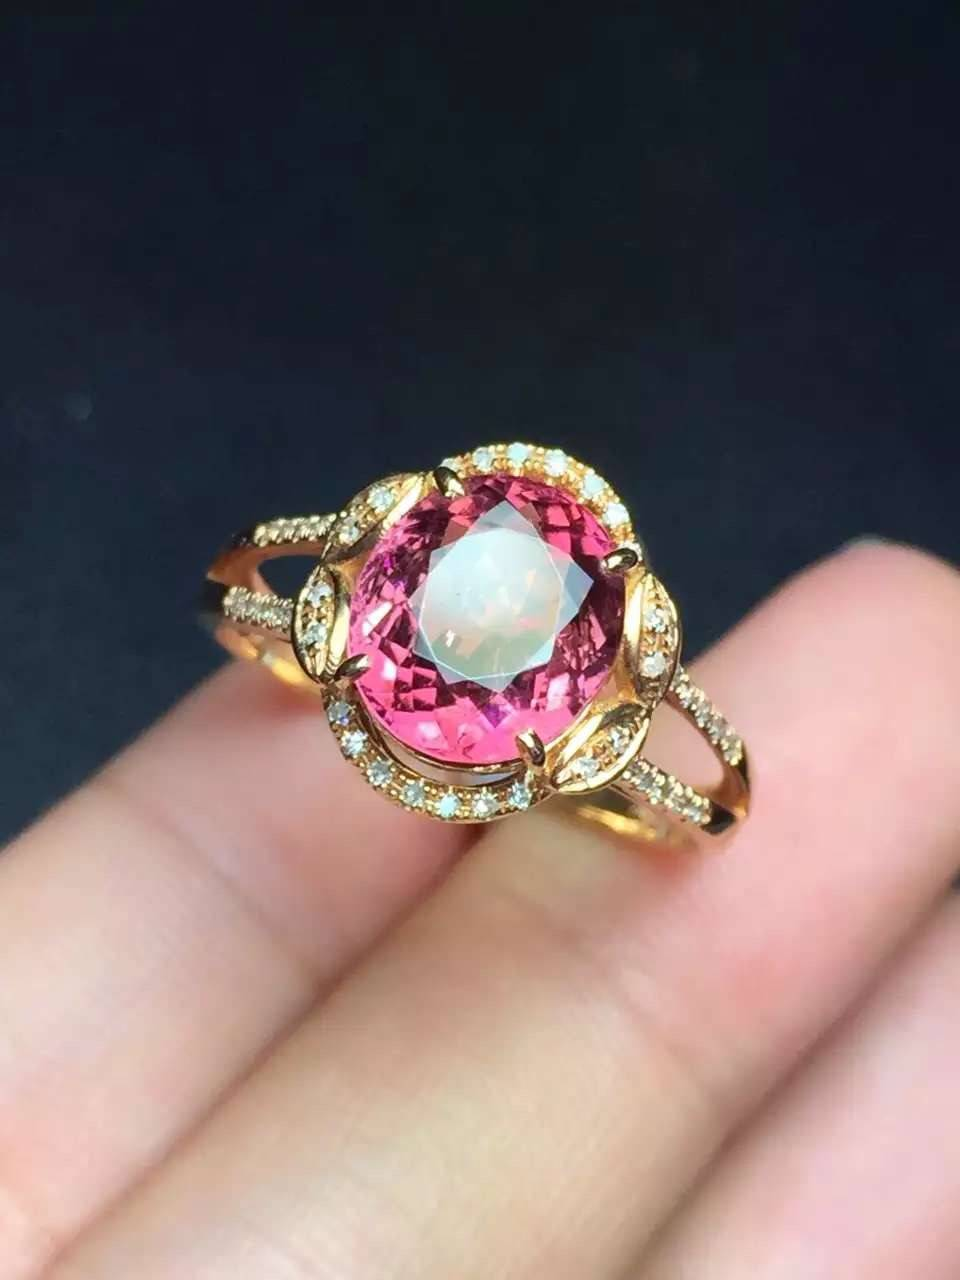 2016 Natural Crystal Clear Tourmaline Ring in 18k Gold Inlaid with Diamonds